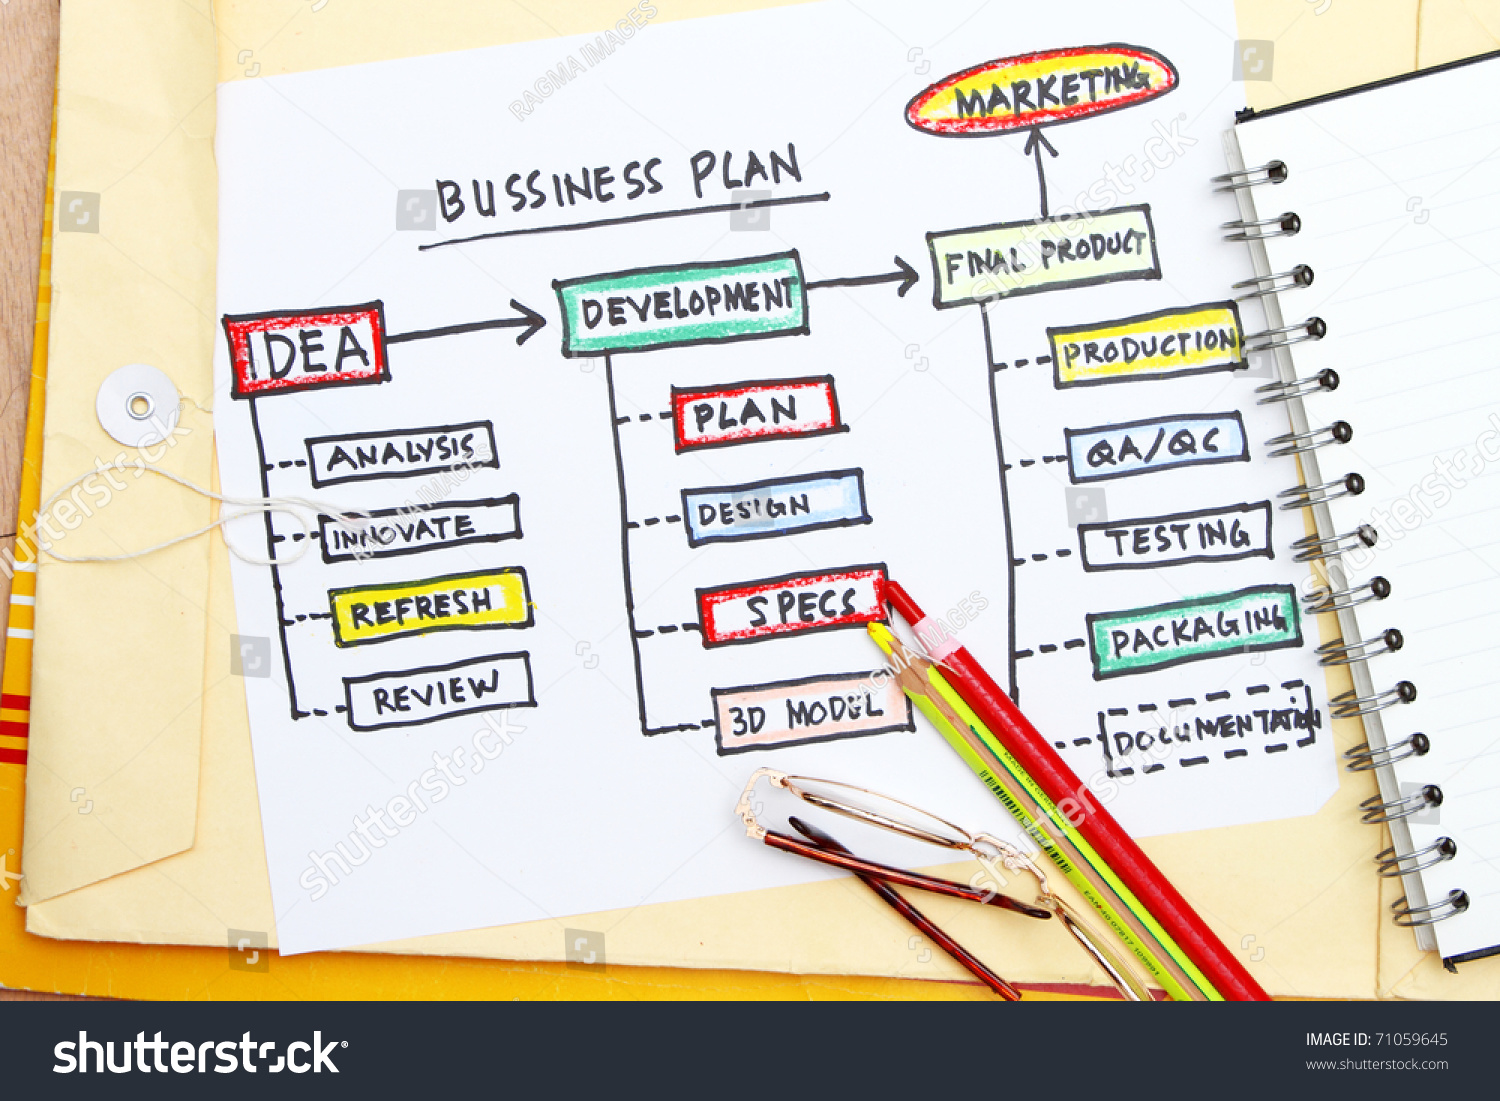 business plan abstract with workflow and process